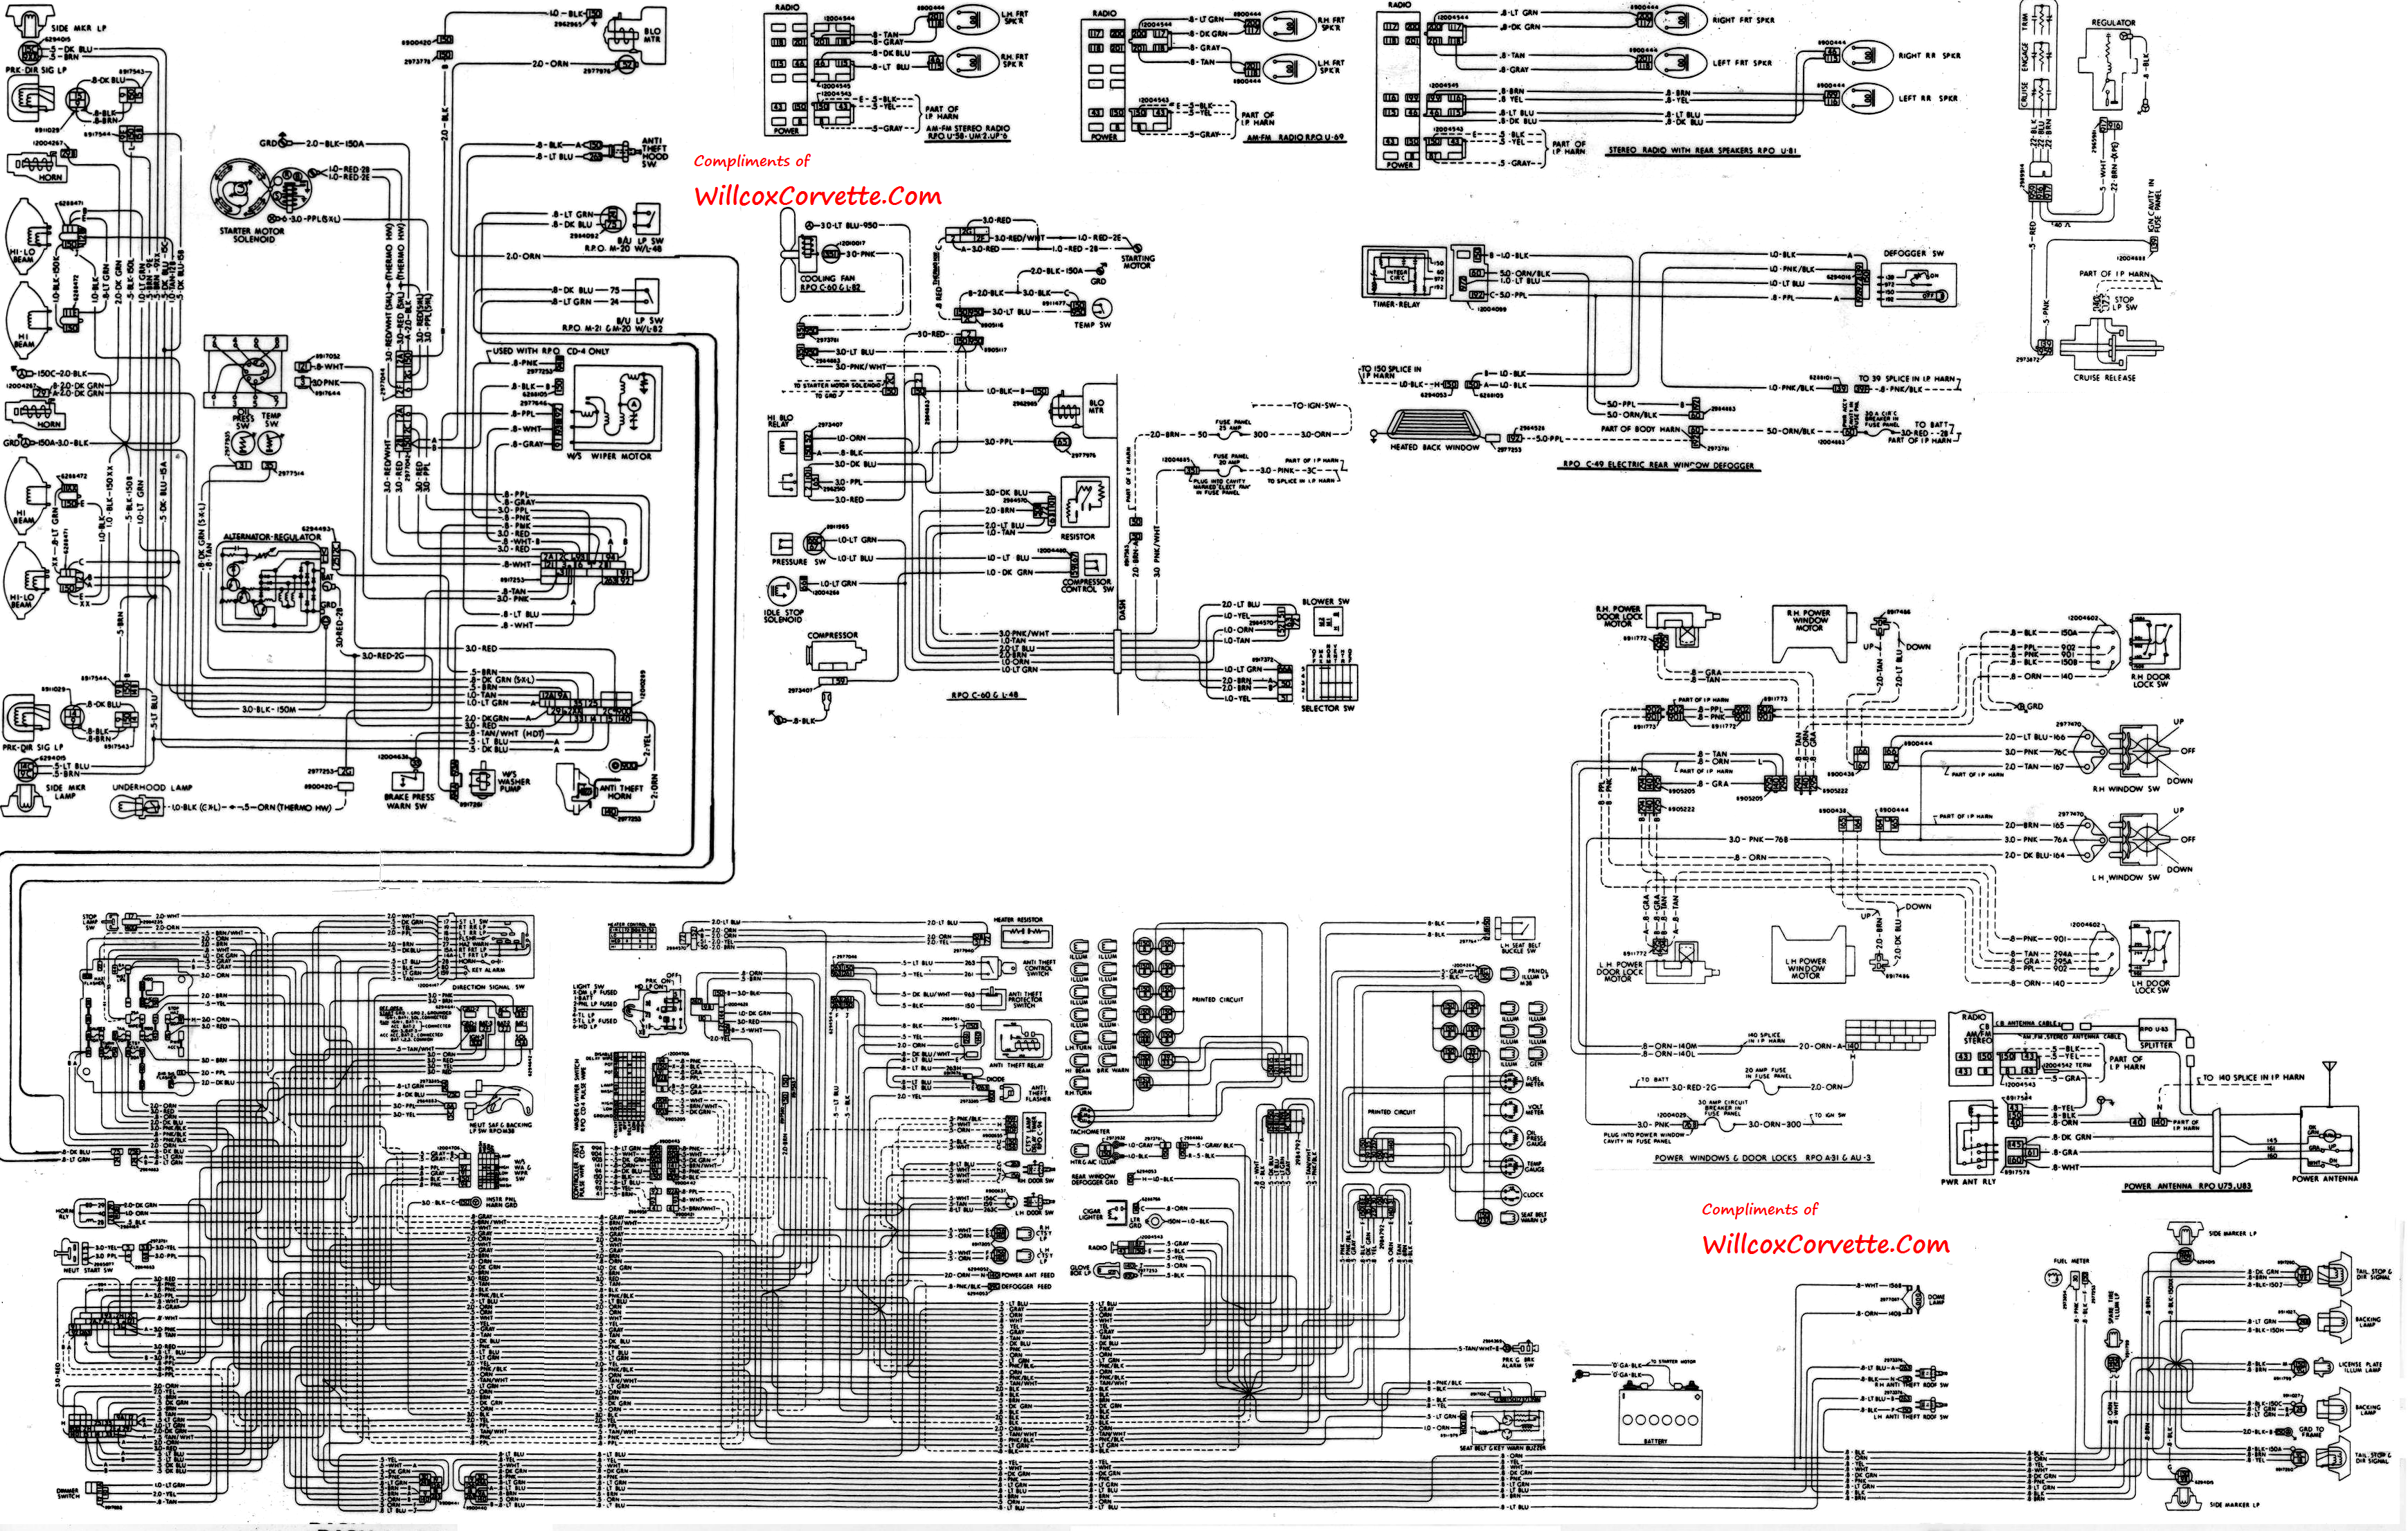 1979 wire diagram corvette wiring diagrams free 1980 corvette wiring diagram  at eliteediting.co